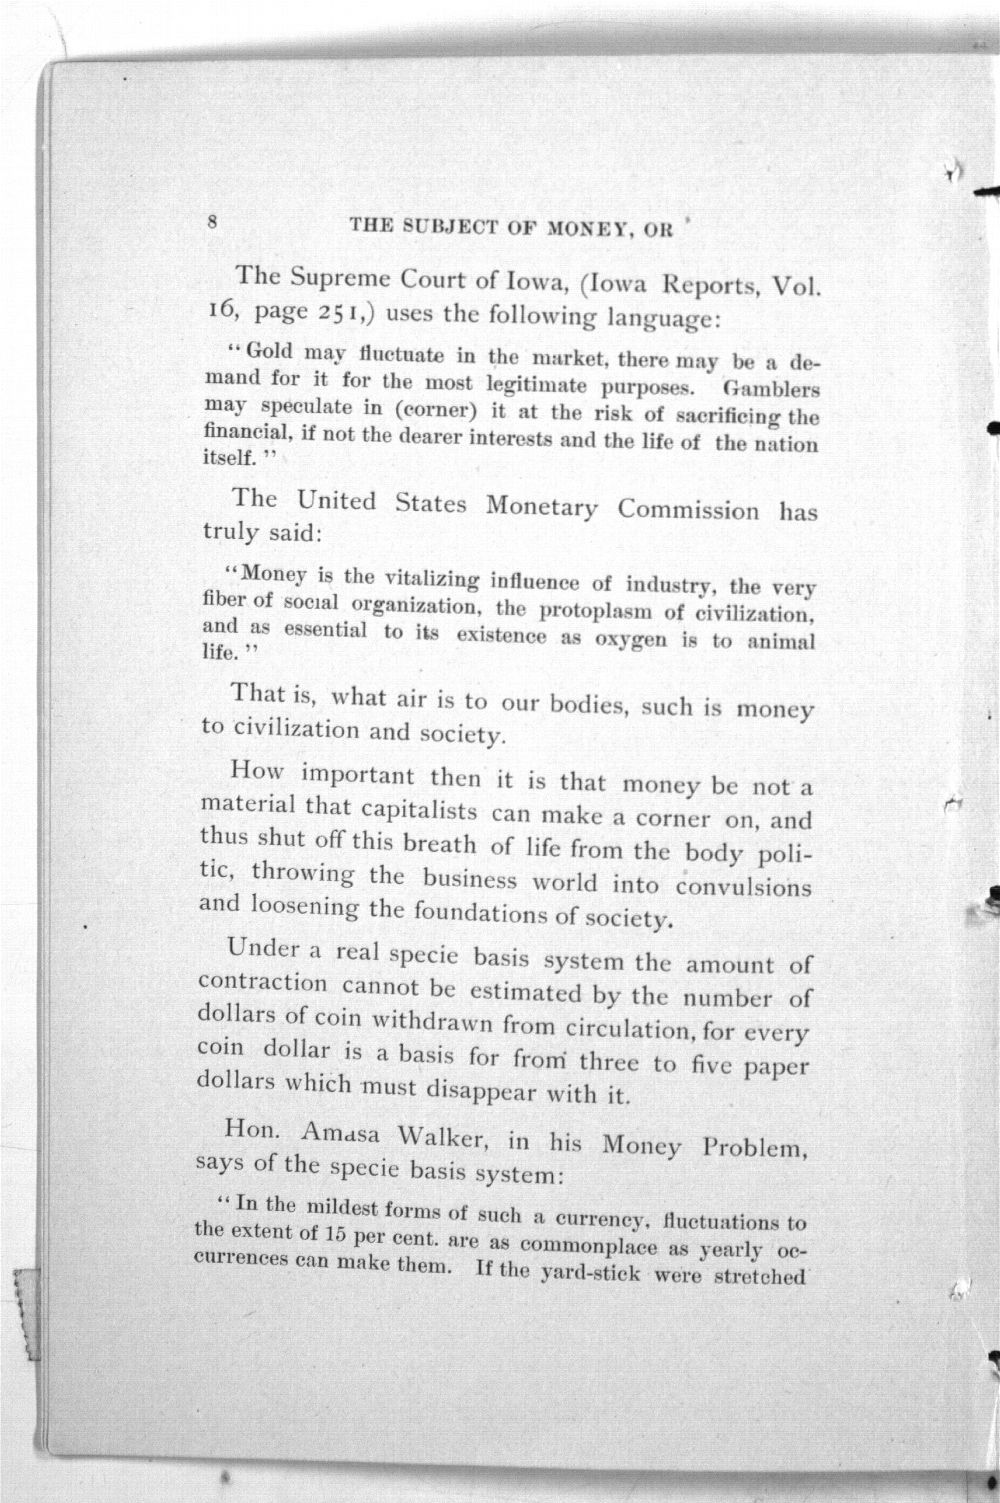 The Subject of Money Considered from the Standpoints of Law, Science, History, Reason. (Third Edition) - 8